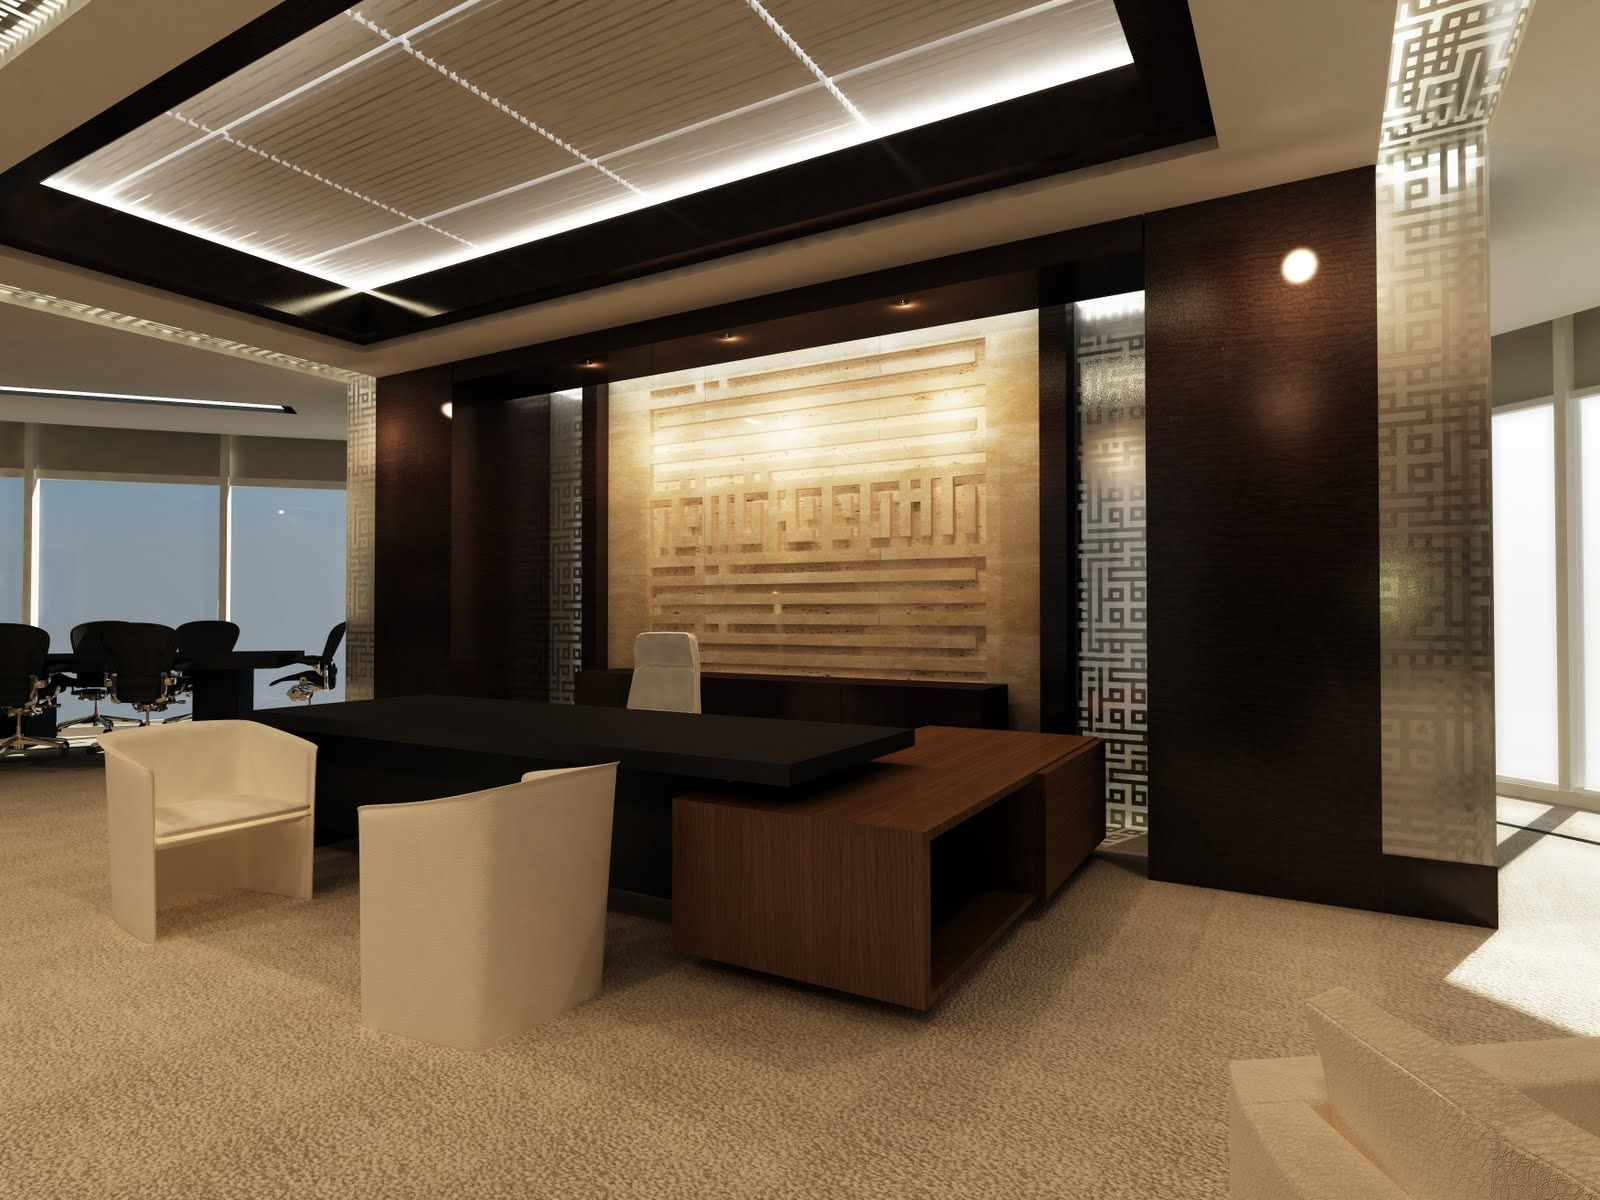 Office interior design intended for office interior design for Office interior decorating ideas